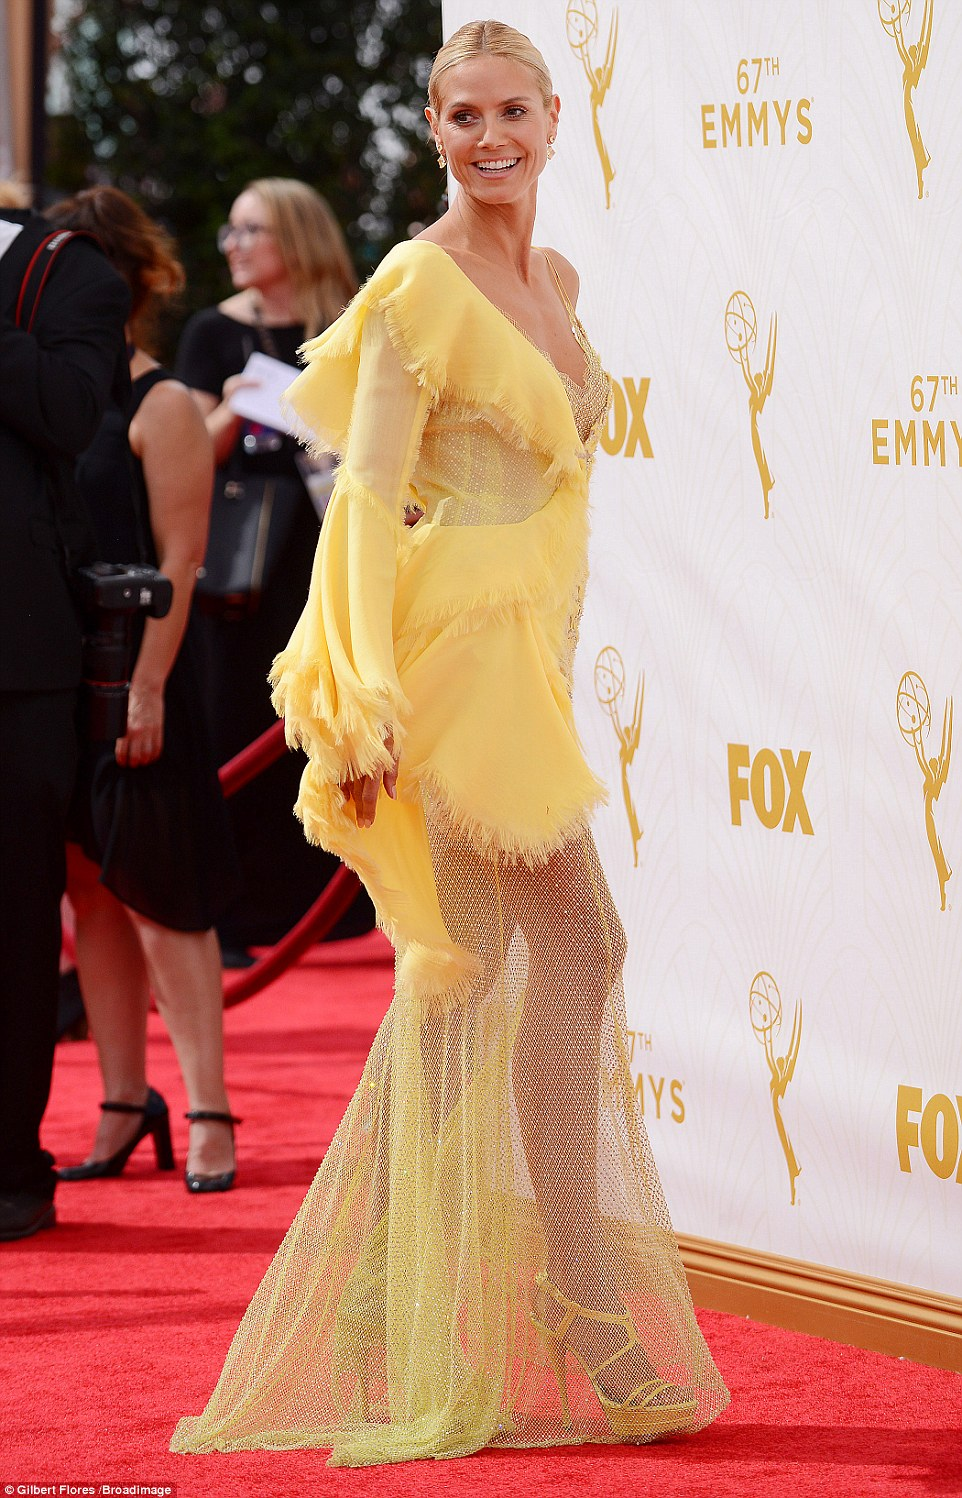 Statuesque: The blonde beauty teamed the garment with gold platform heels